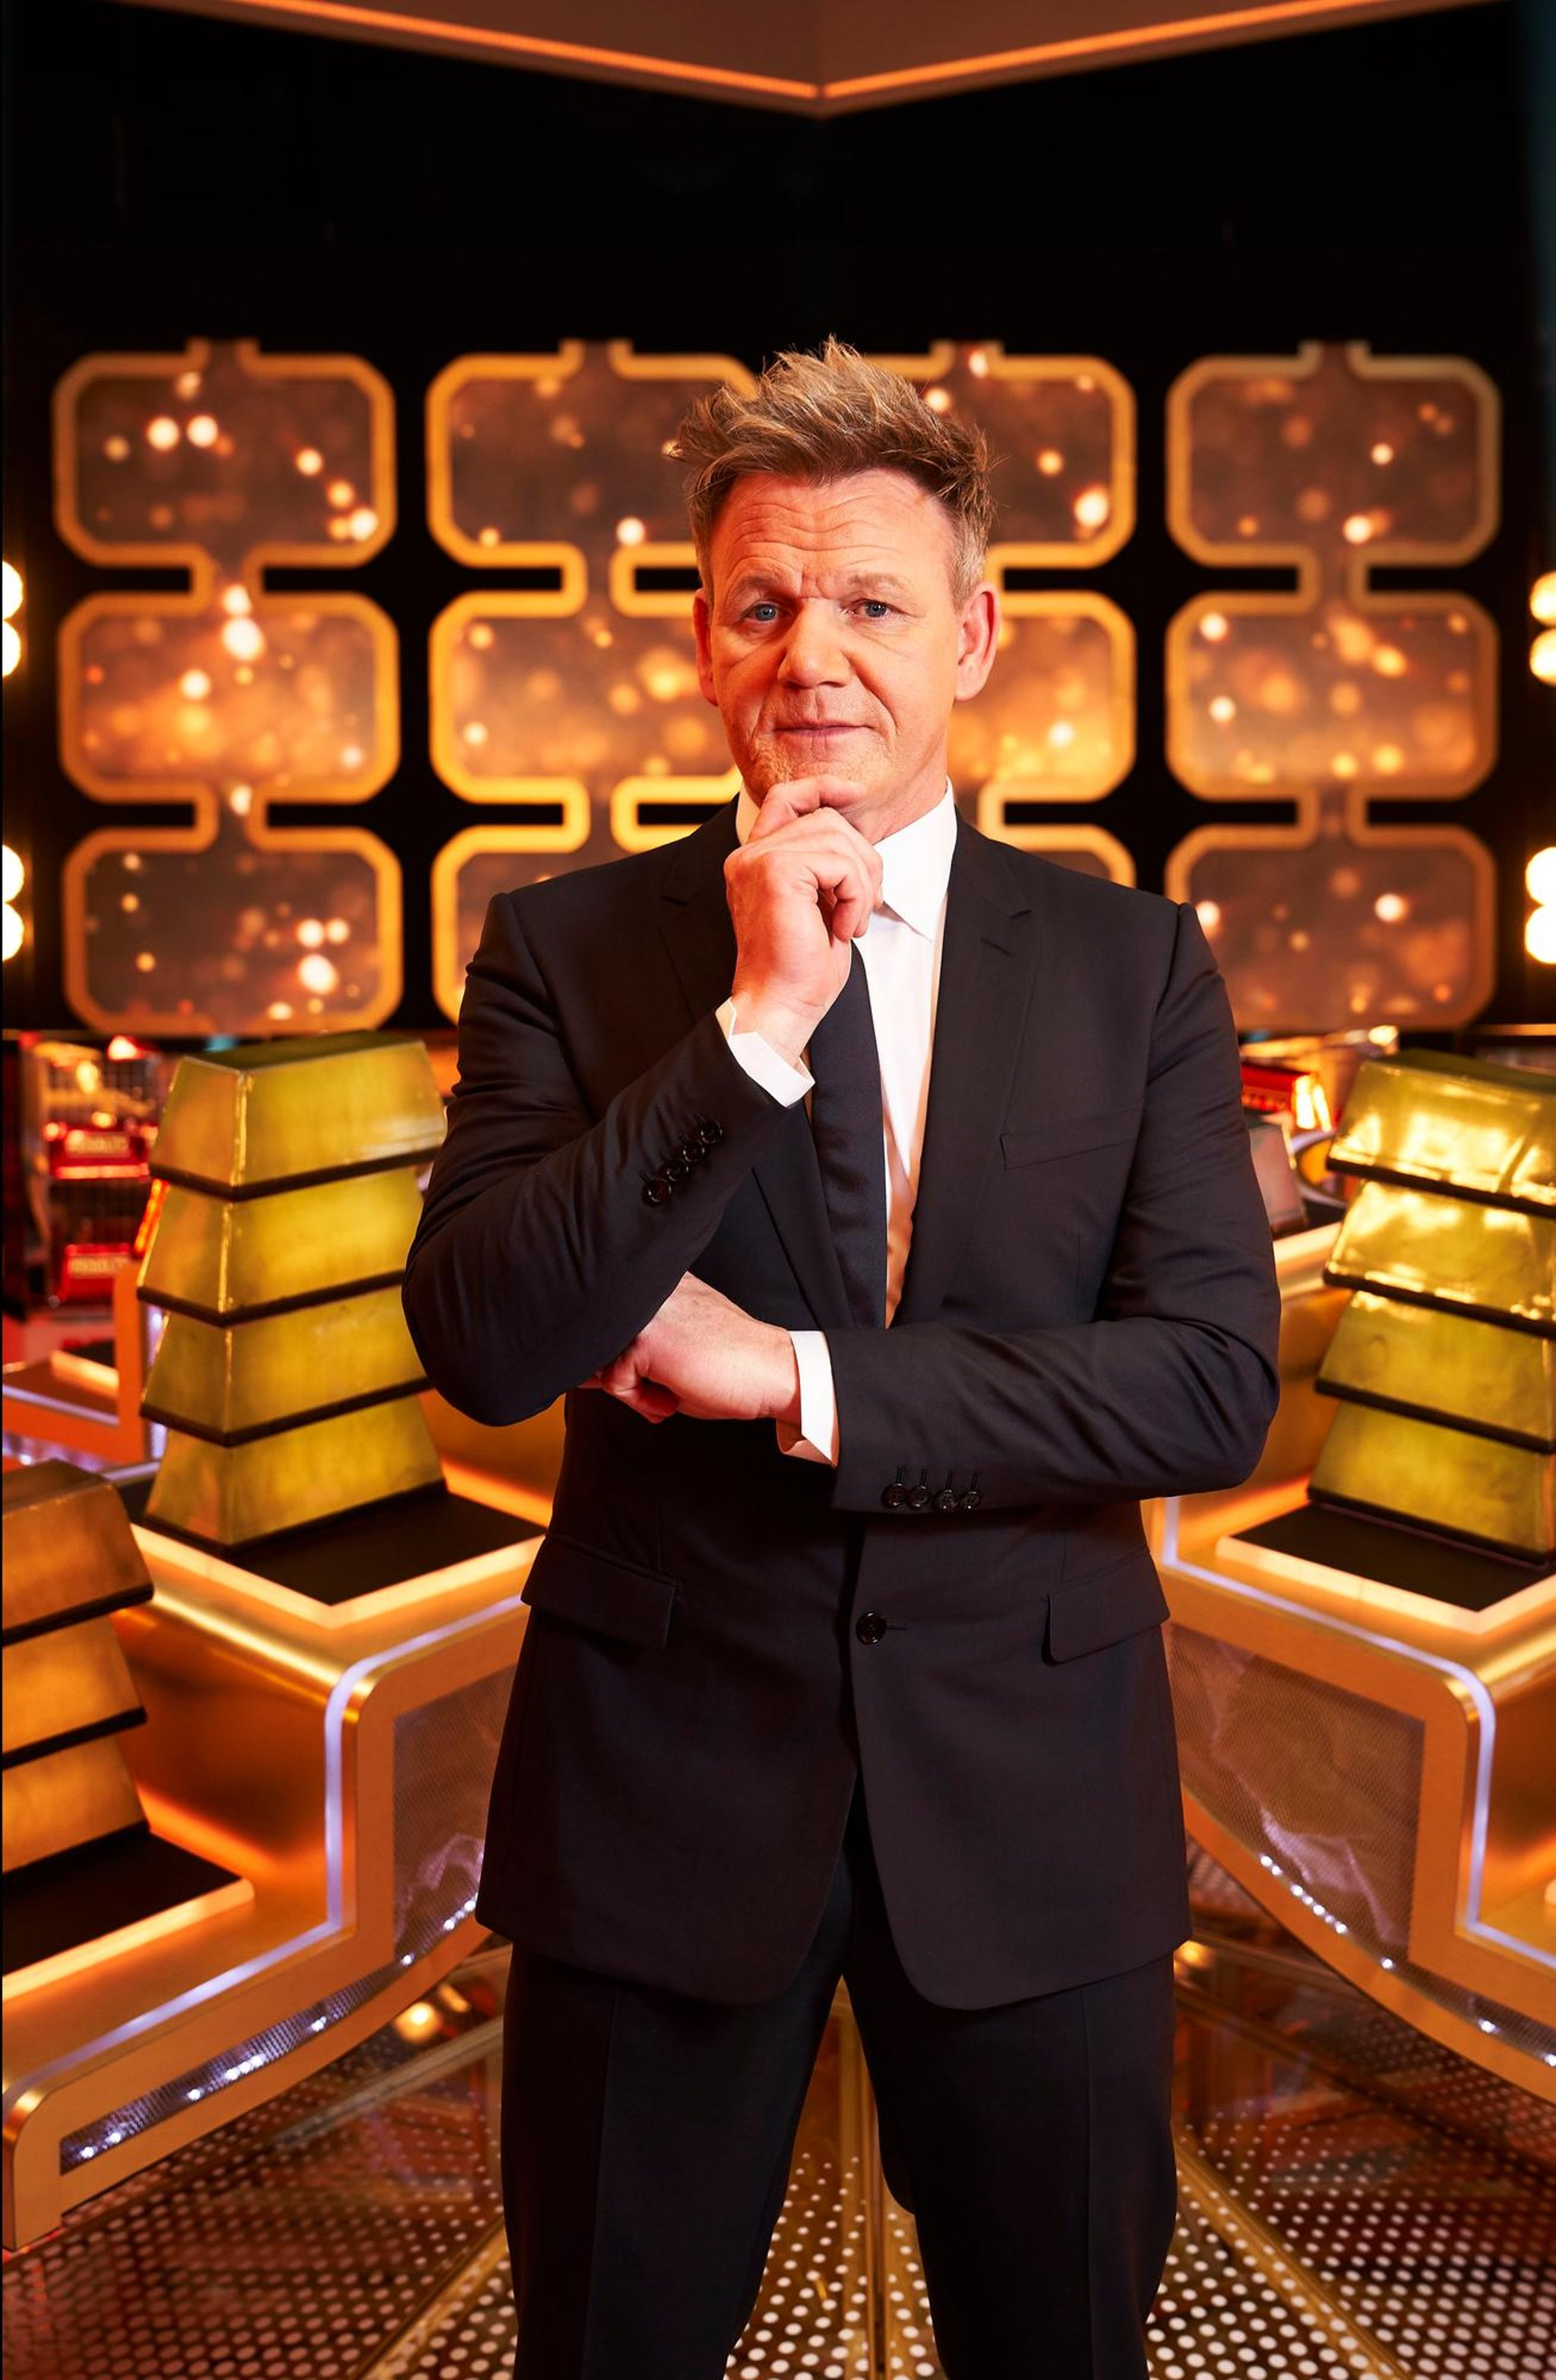 After Gordon Ramsay's attack on Falkirk, here's why people in rubbish game shows shouldn't throw stones – Aidan Smith